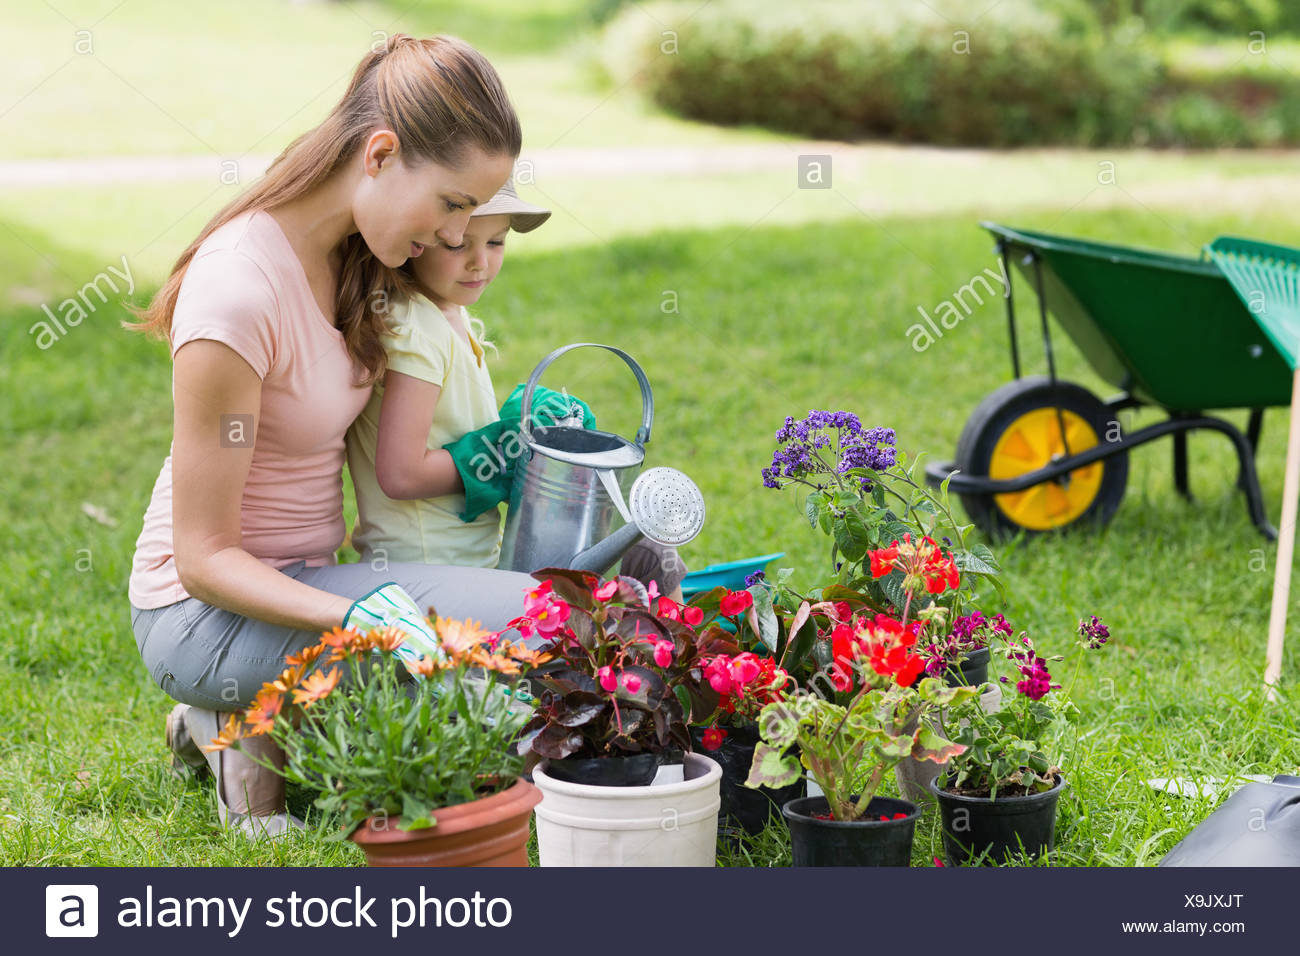 Mother and daughter engaged in gardening - Stock Image